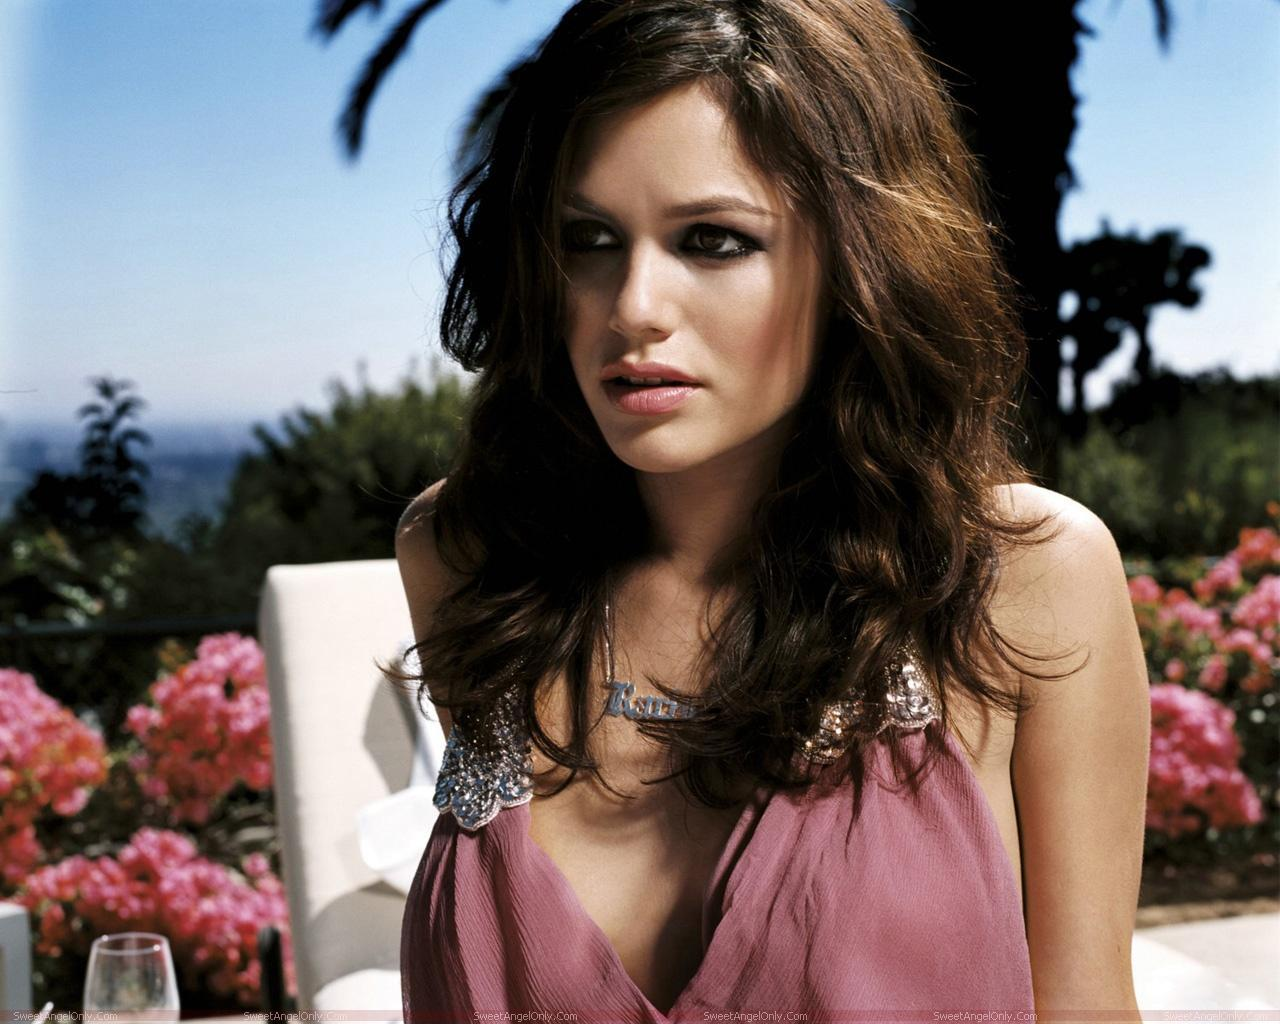 jumper actress rachel sarah bilson wallpapers - Jumper Actress Rachel Sarah Bilson WallpaperFinder